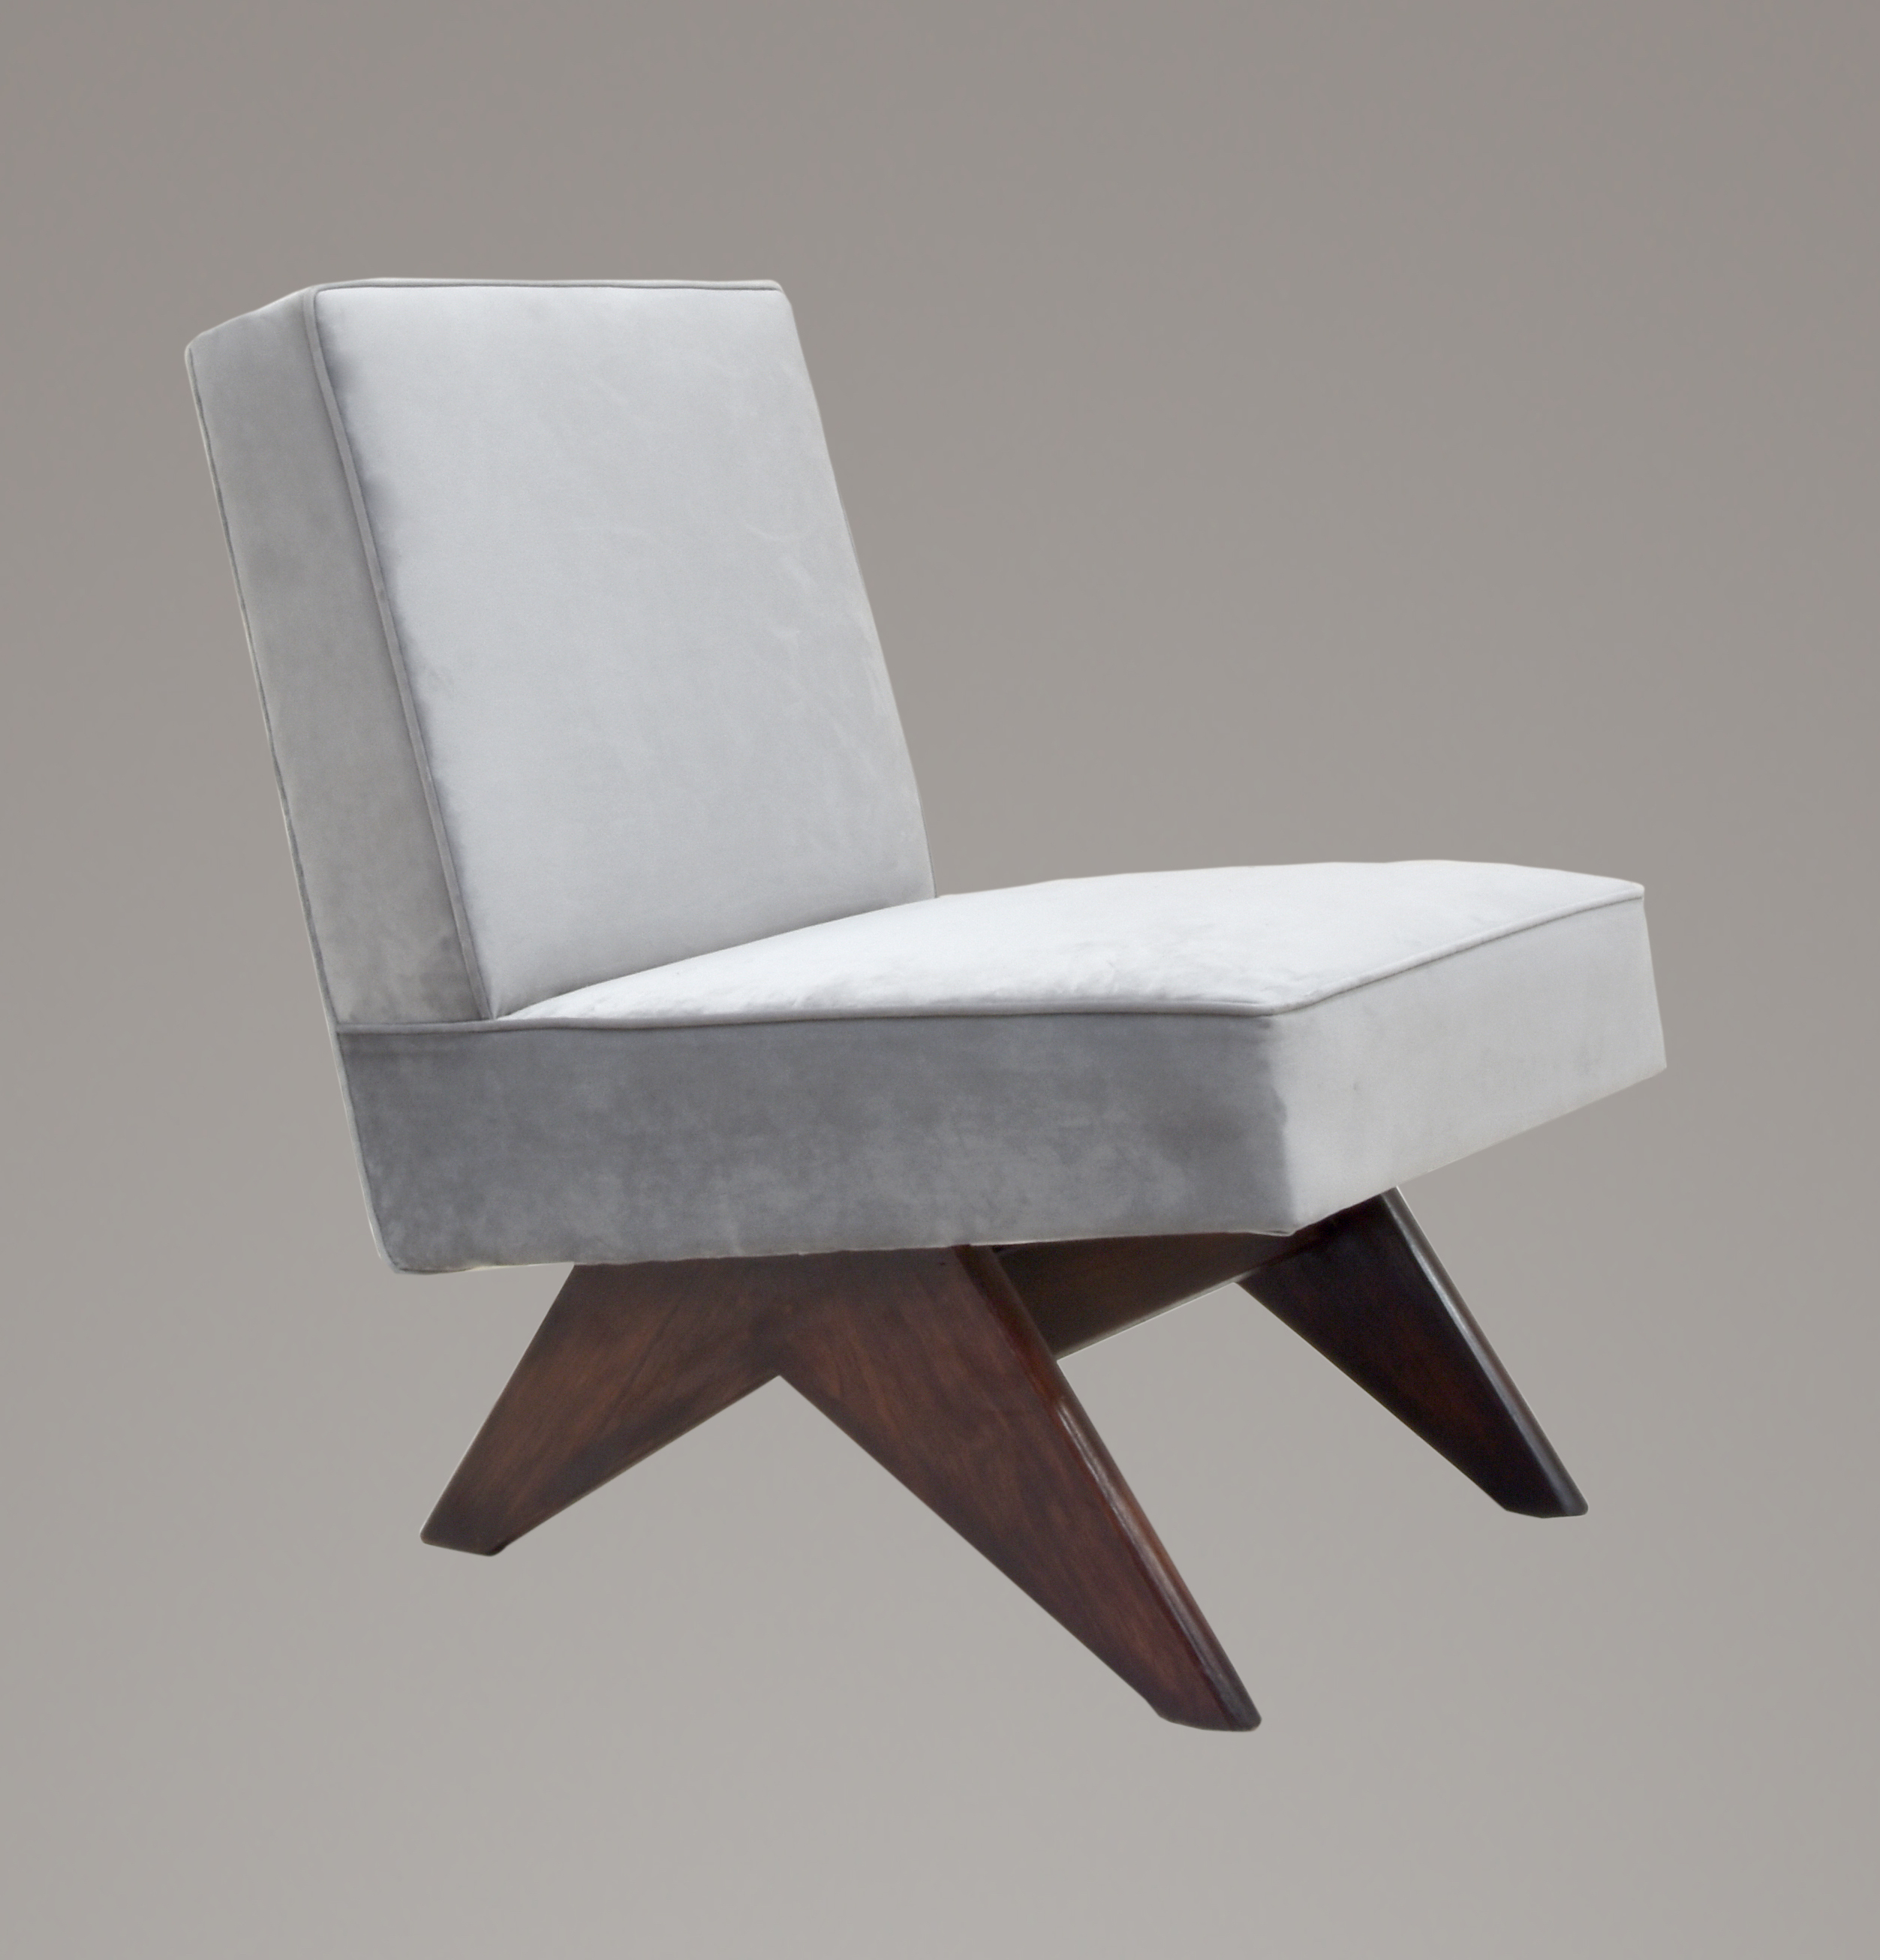 Pierre Jeanneret Upholstered Armless Lounge Chair